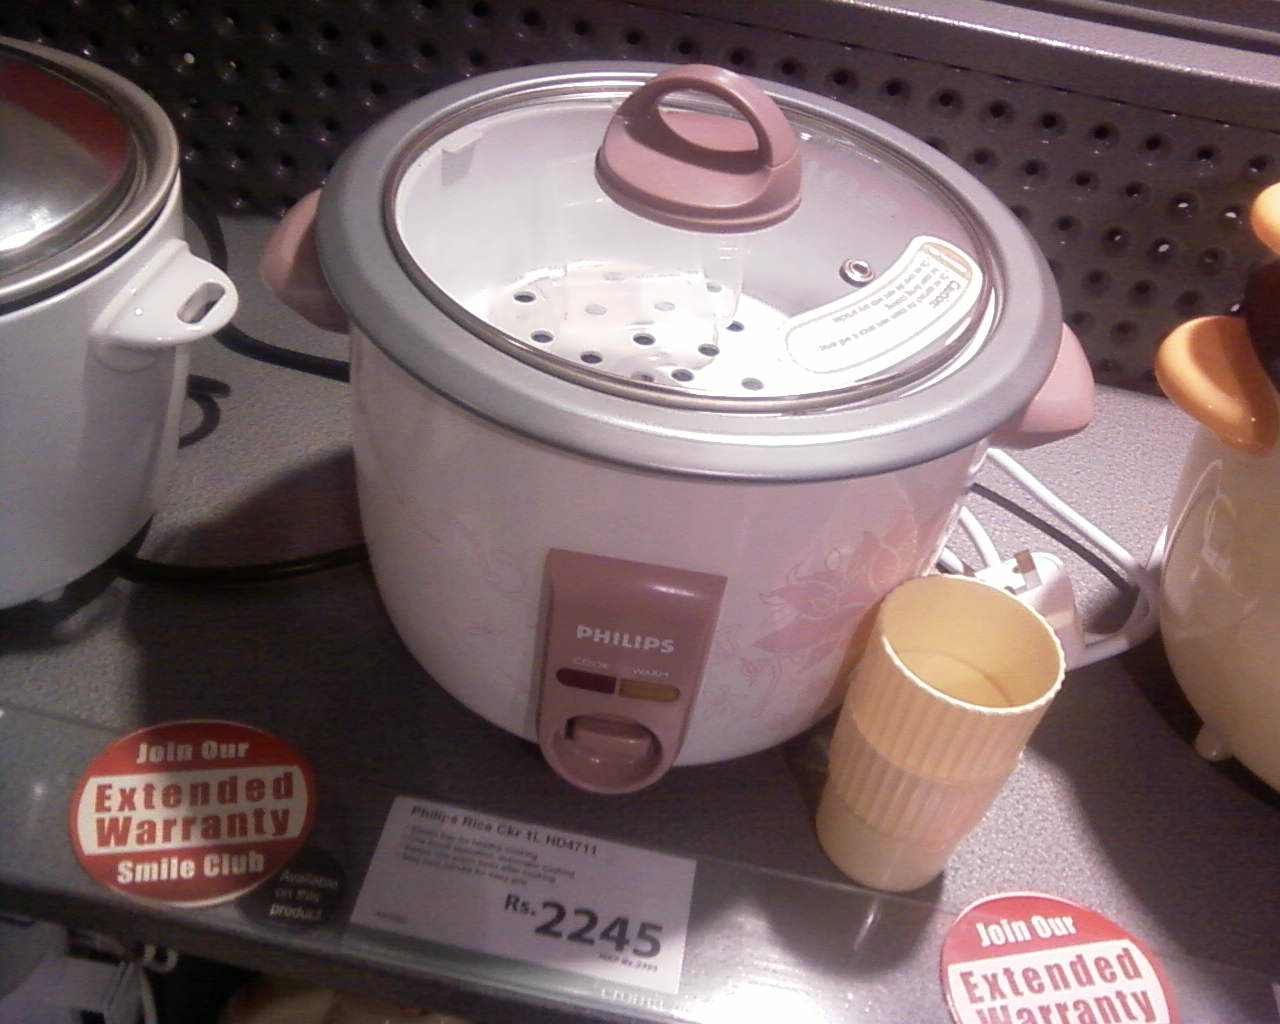 hight resolution of electric rice cooker made by philips in an indian appliance showroom